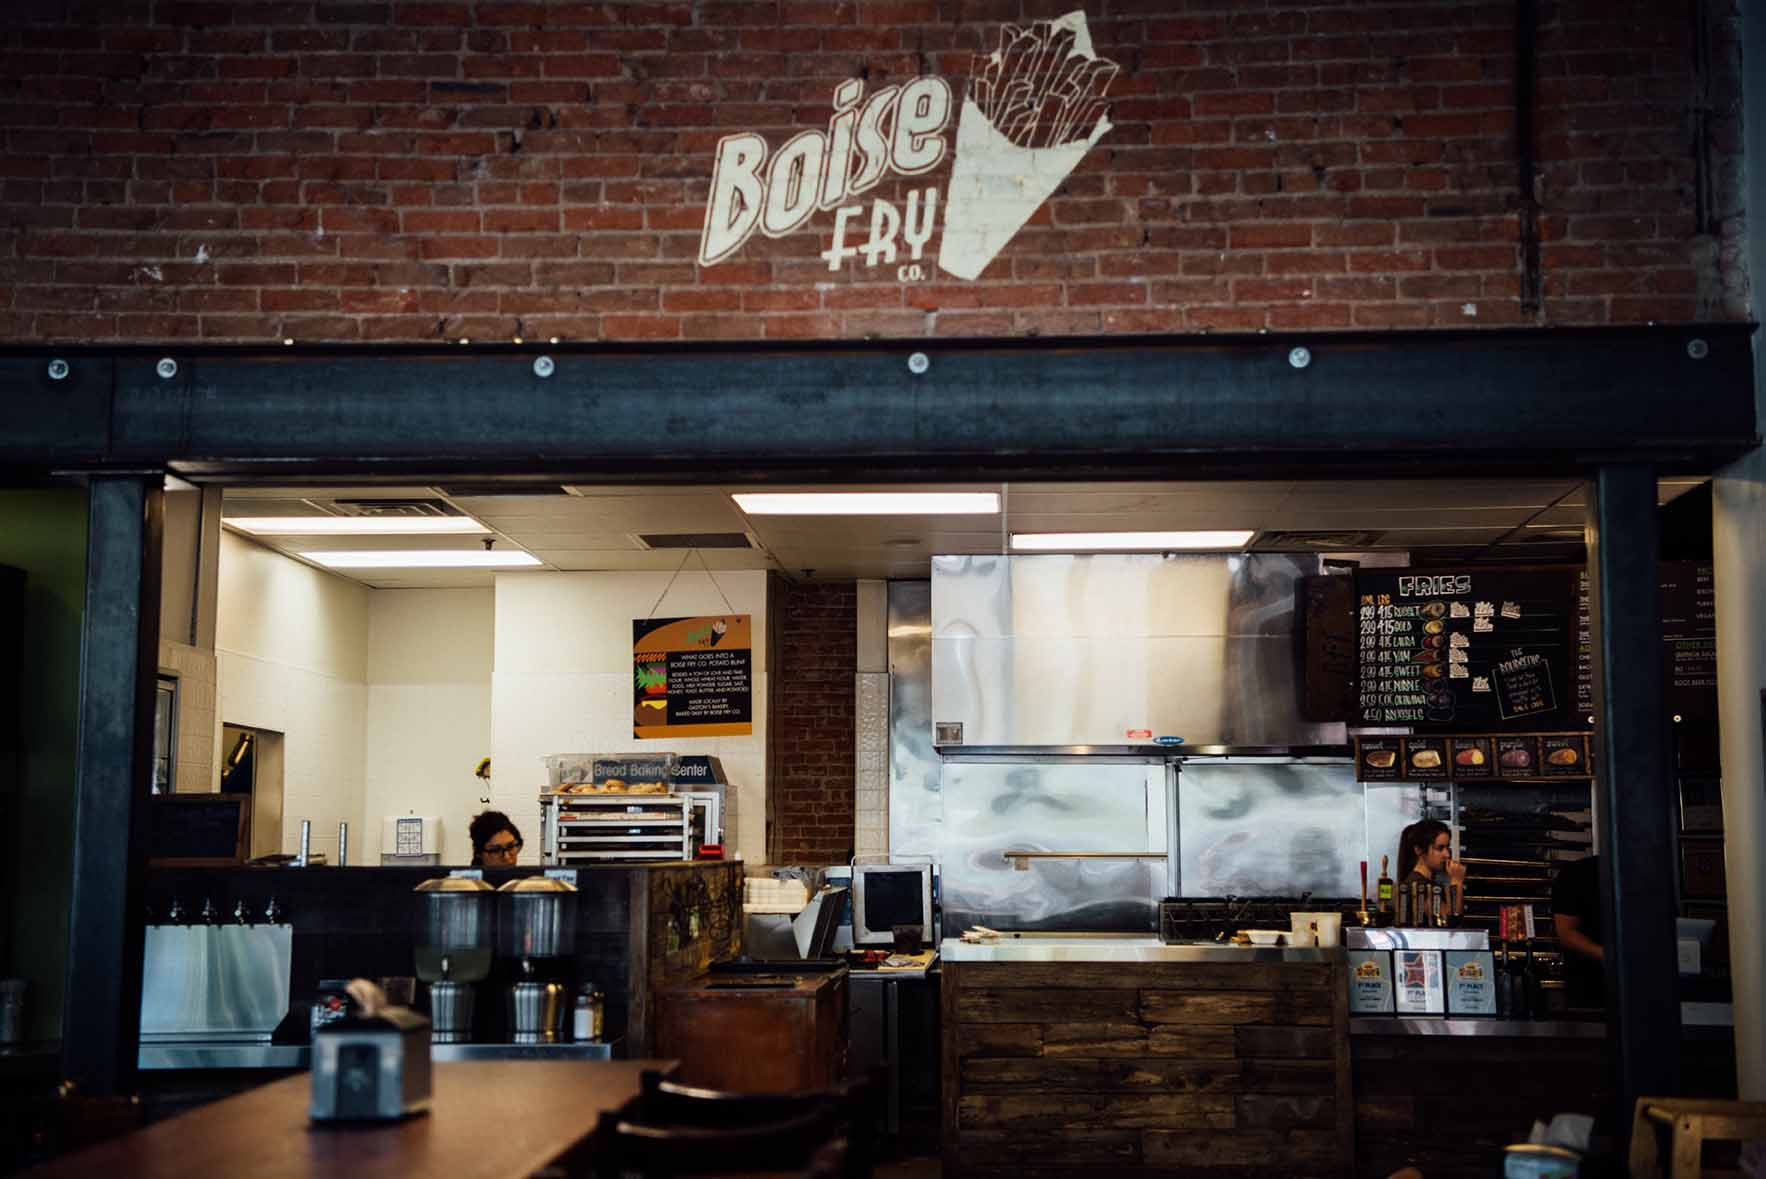 Boise Fry Company in Boise, Idaho | Nik Sharma Photography